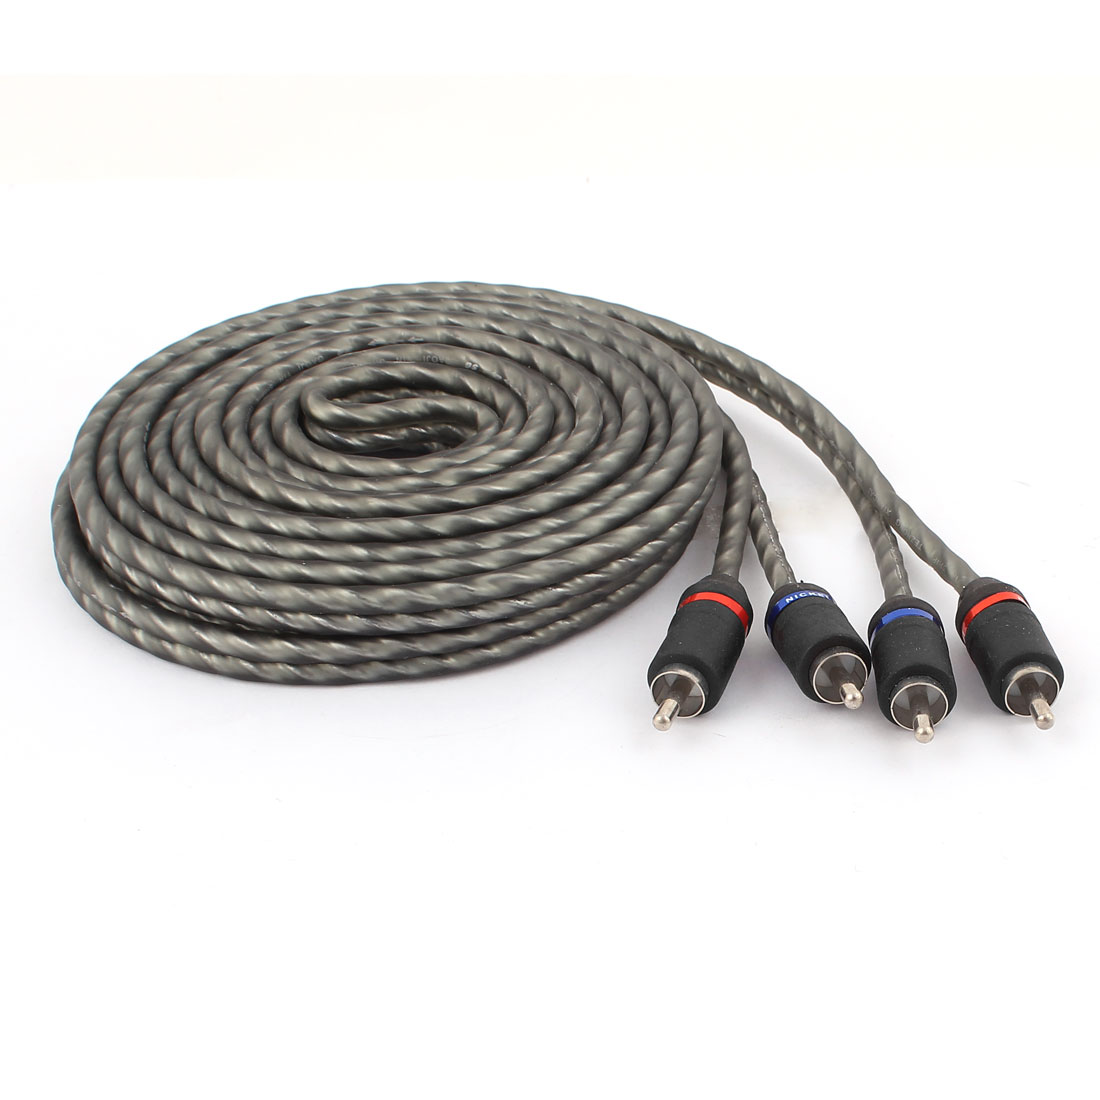 5 Meter 2 RCA Male to Male Connector Video Audio Cable Gray